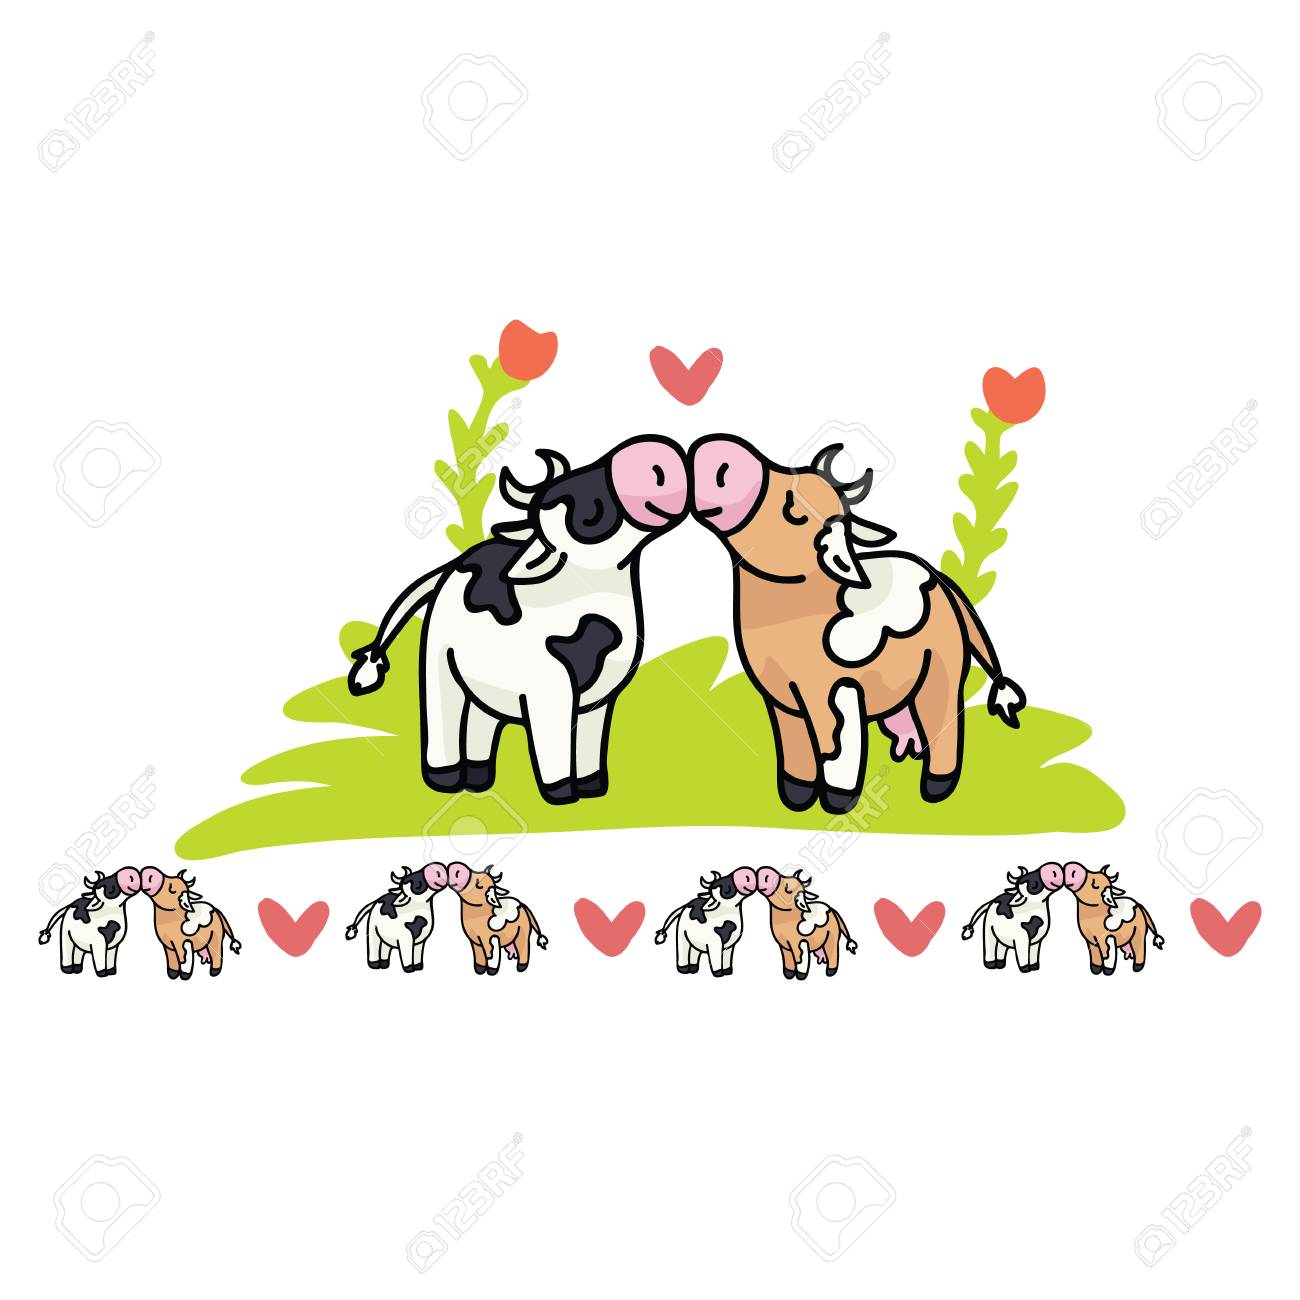 hight resolution of cute cow love cartoon vector illustration motif set hand drawn isolated farm animal valentines elements